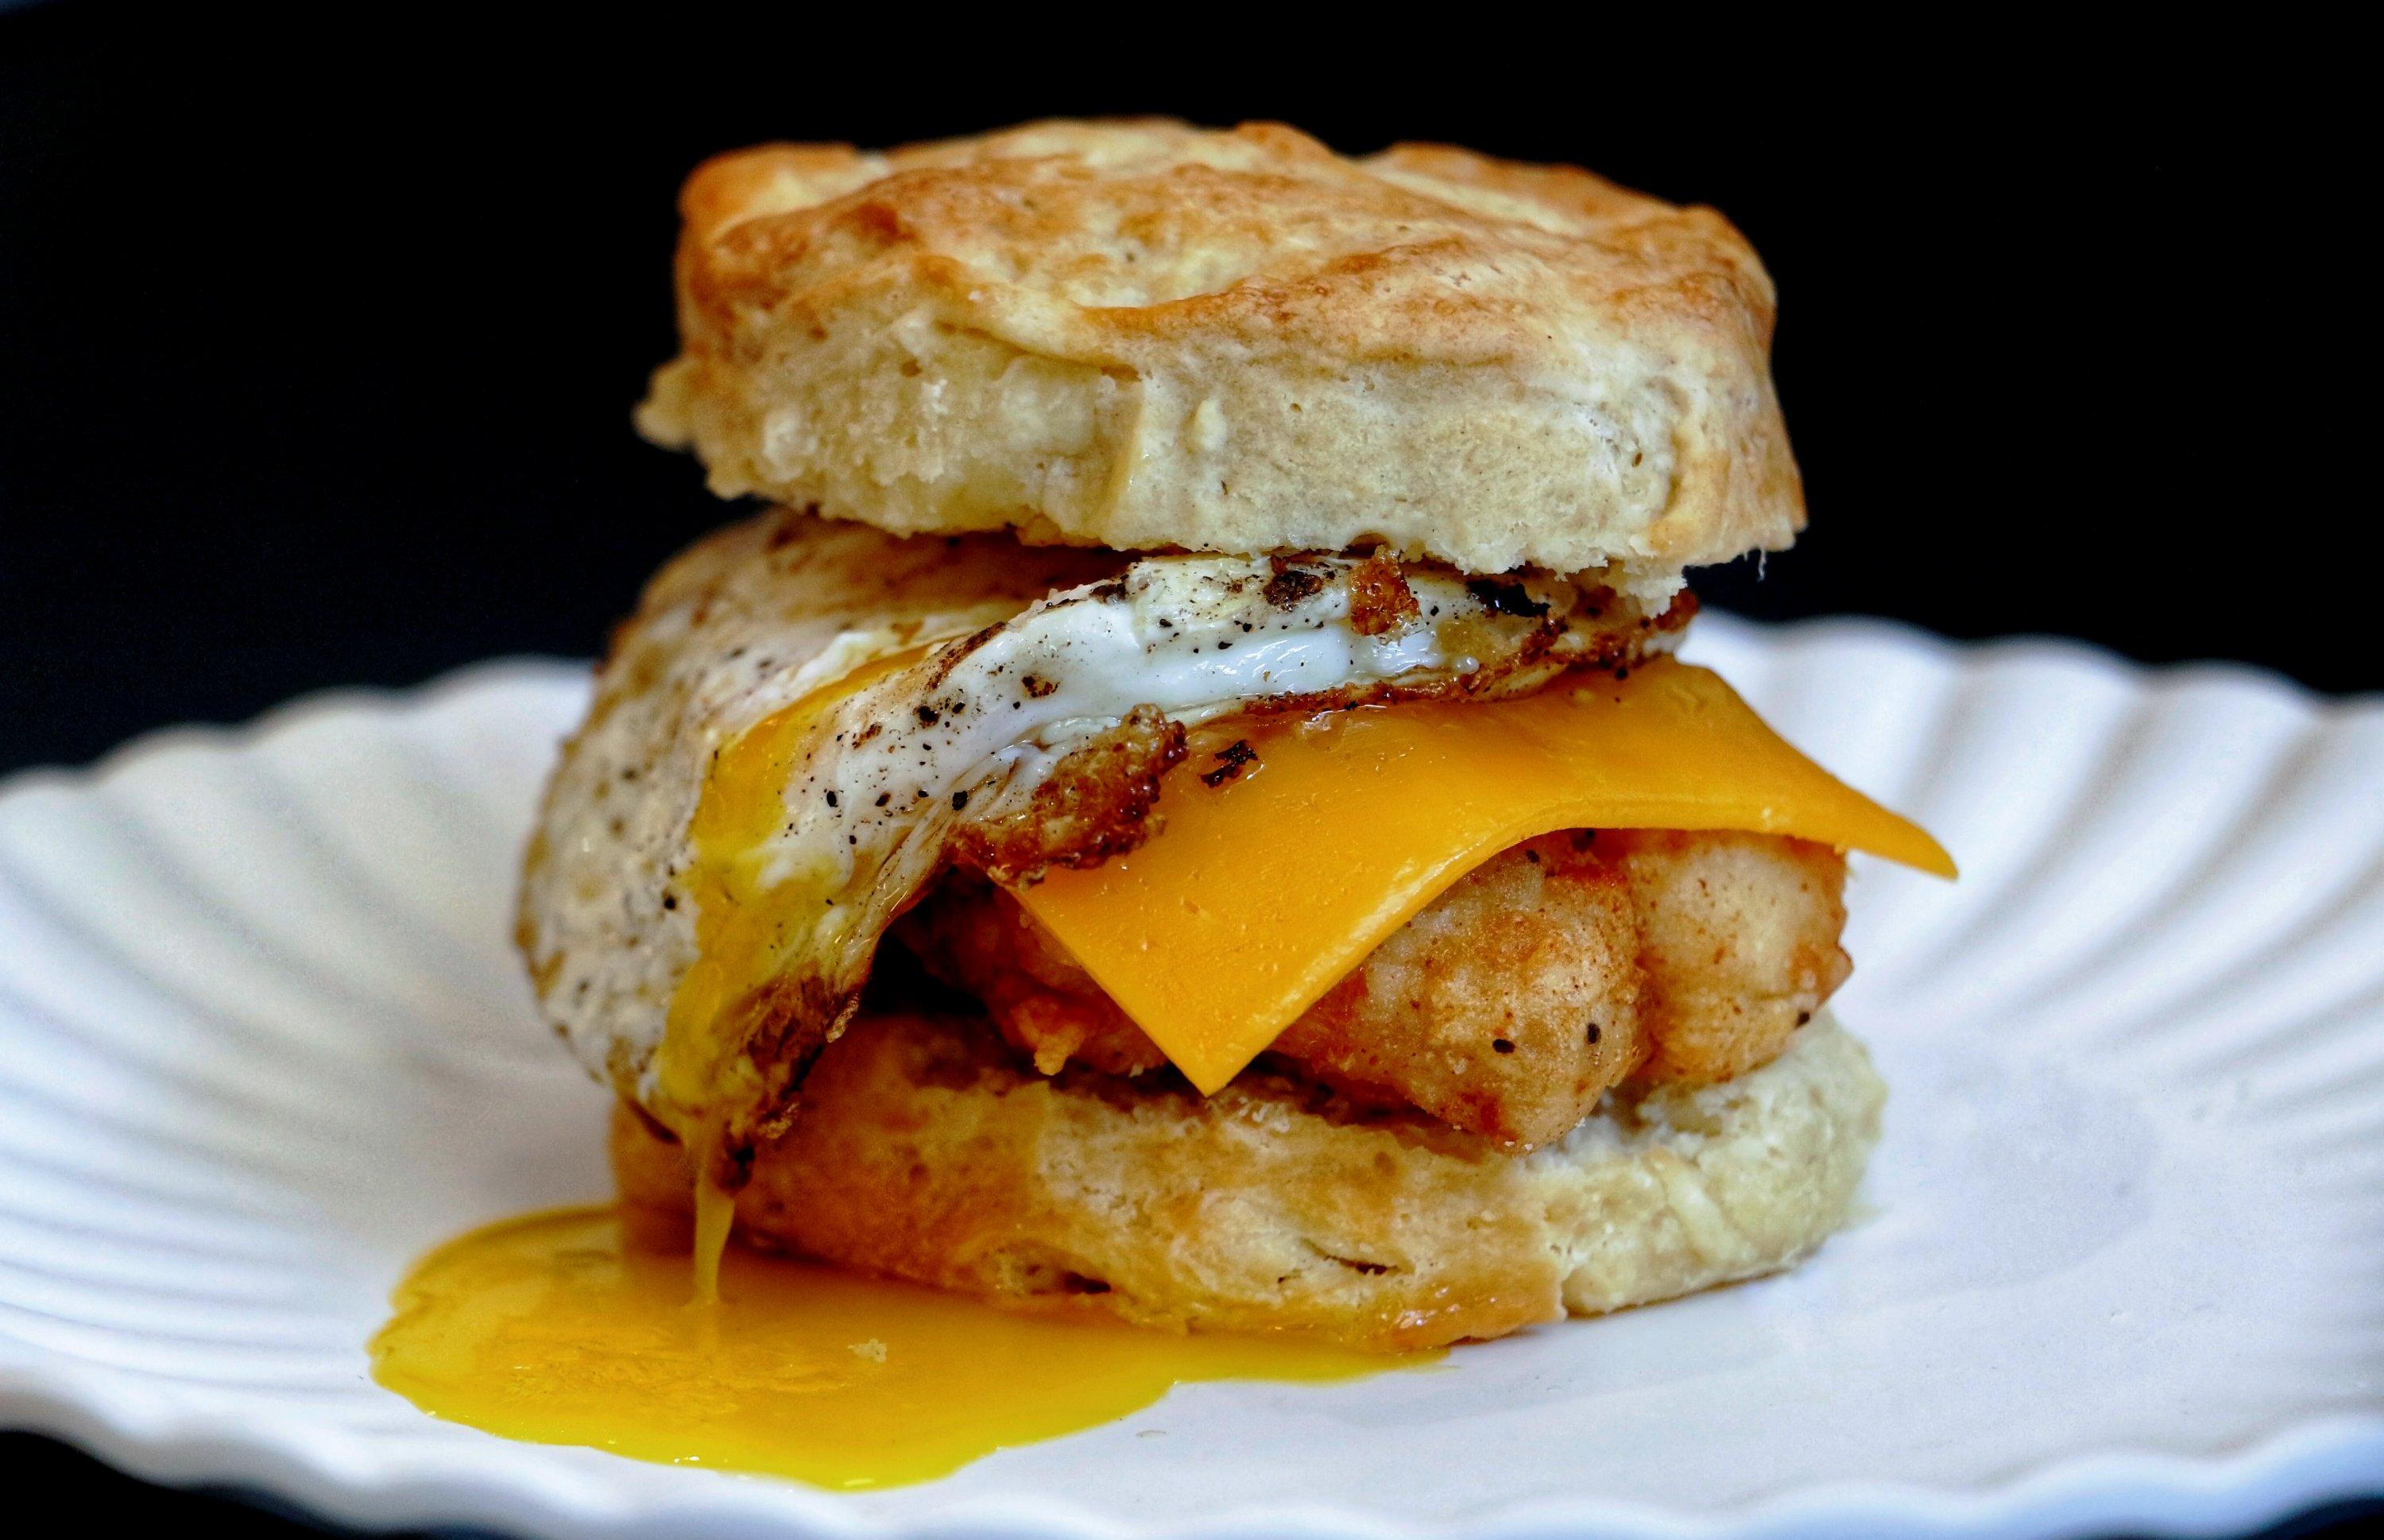 Breakfast biscuit at Mason Dixie Biscuit Co. Photograph by Jai Williams.